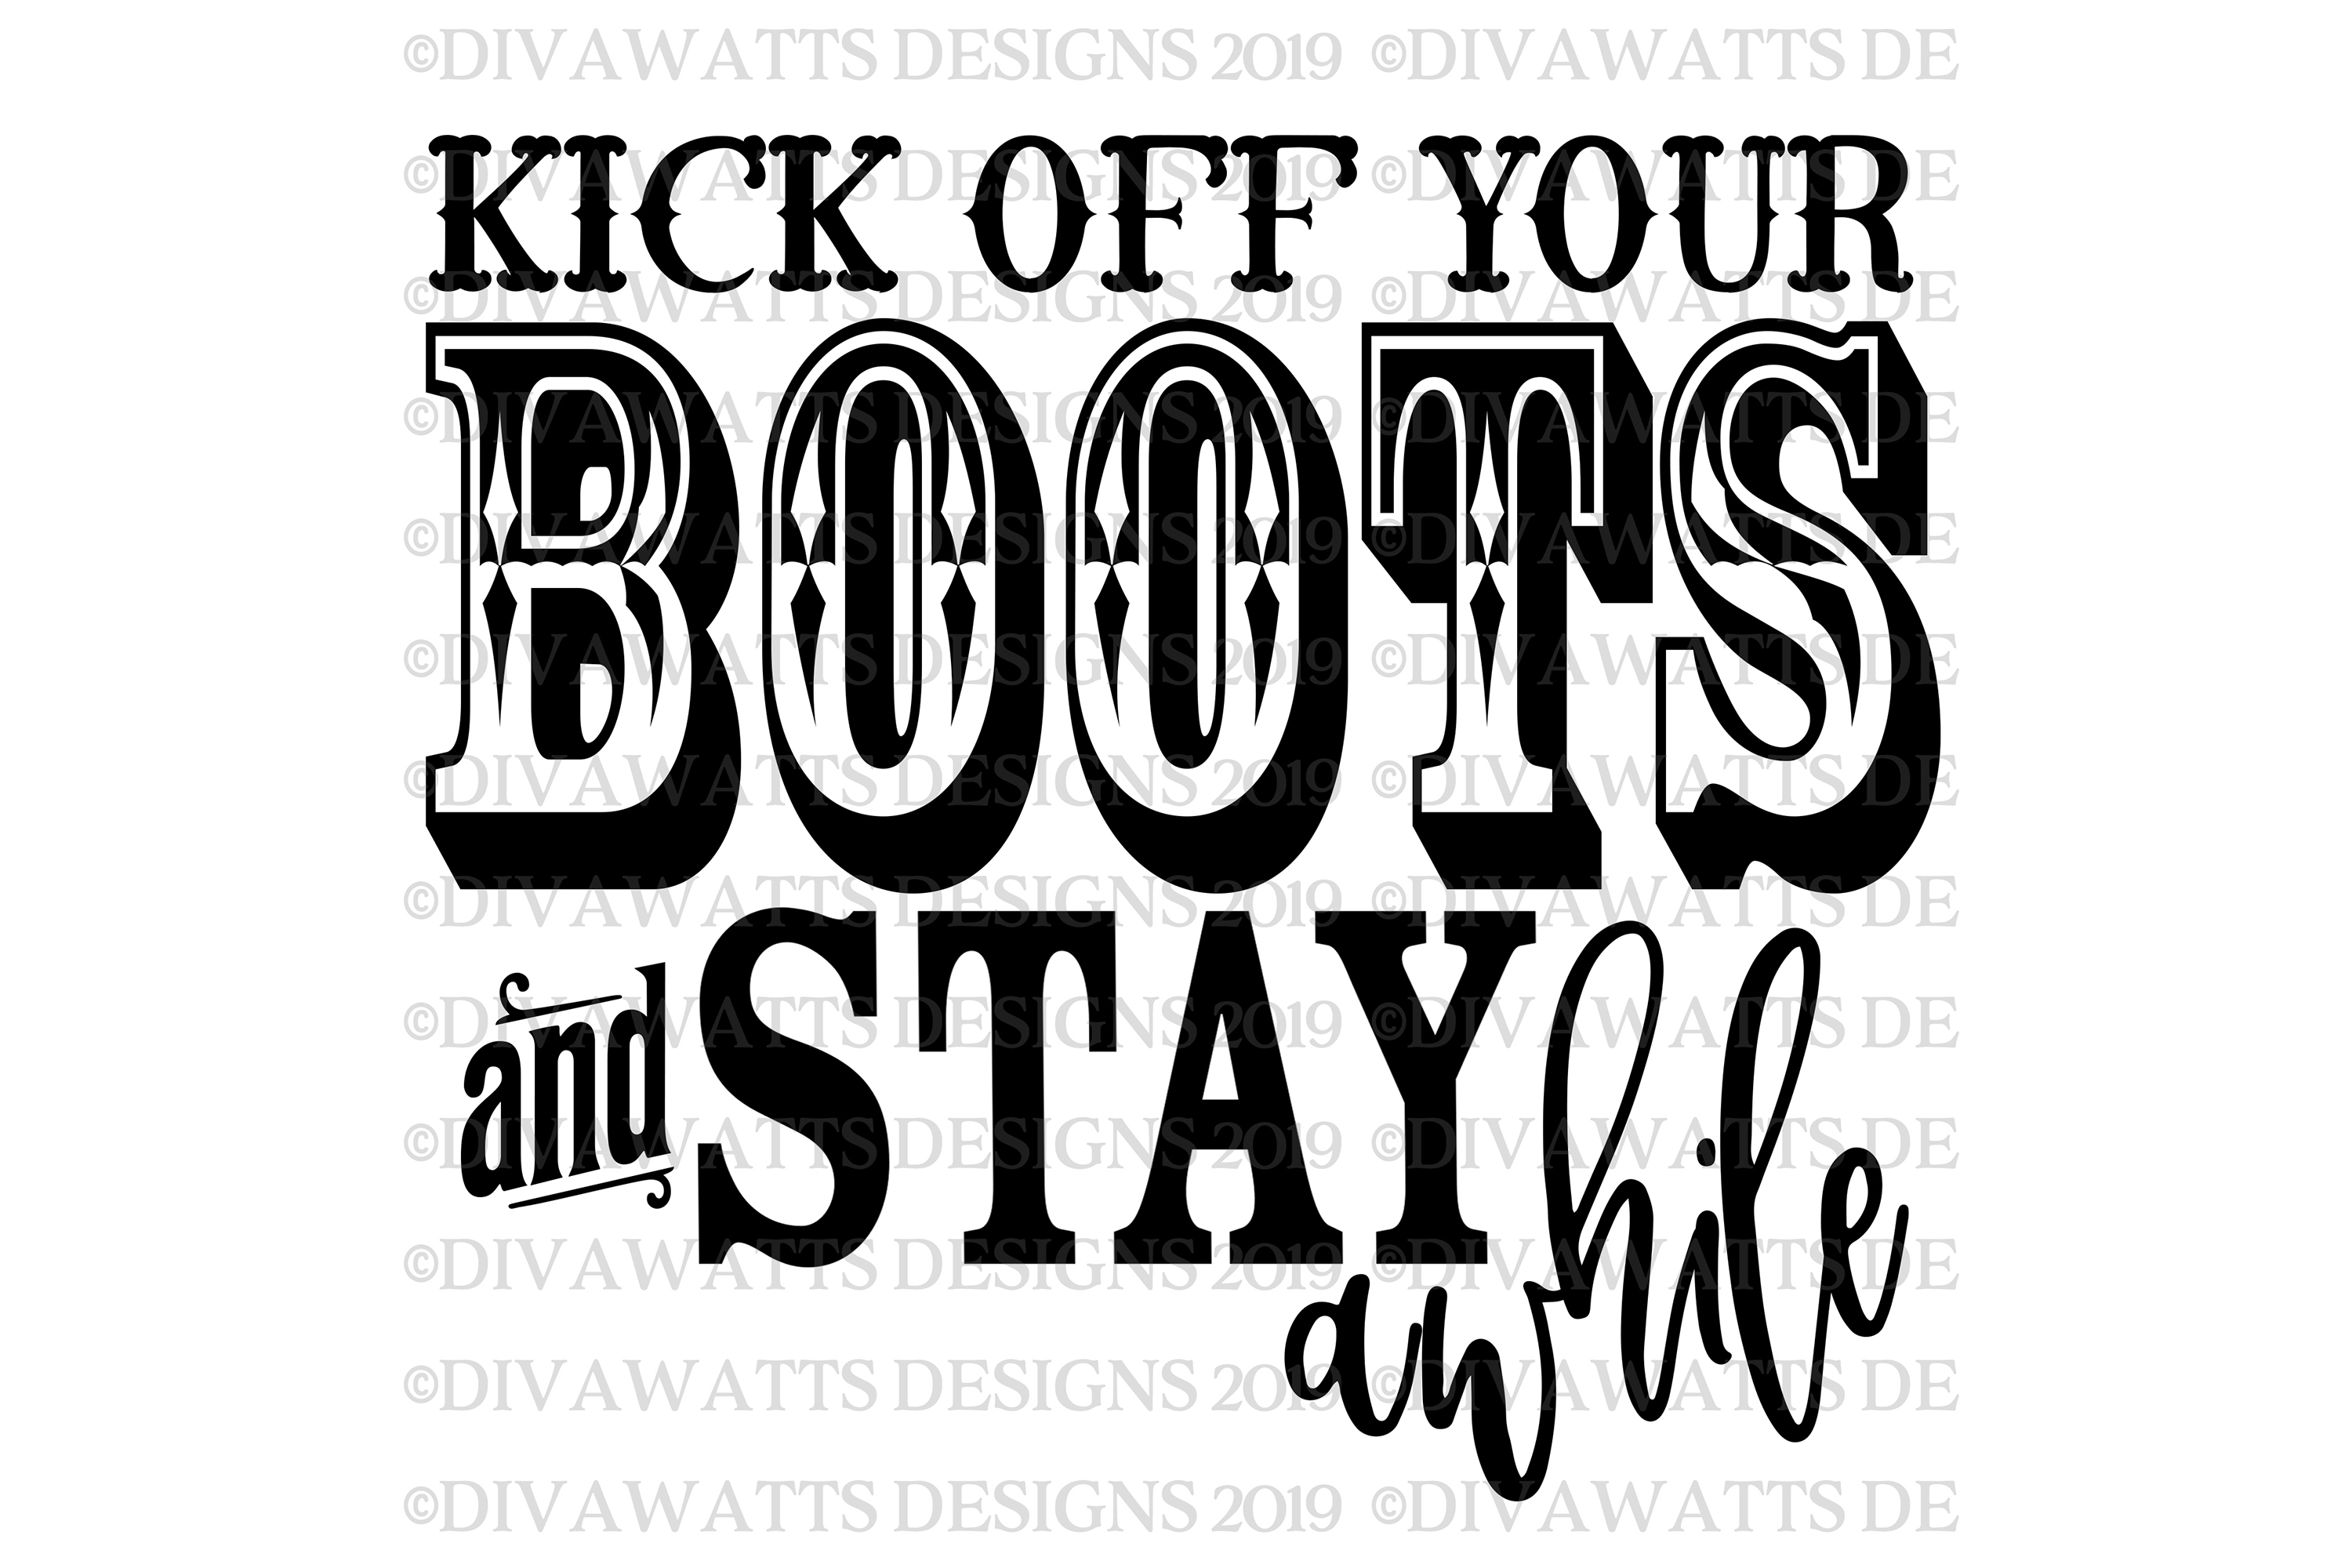 Kick Off Your Boots And Stay Awhile - Rustic Farmhouse SVG example image 4